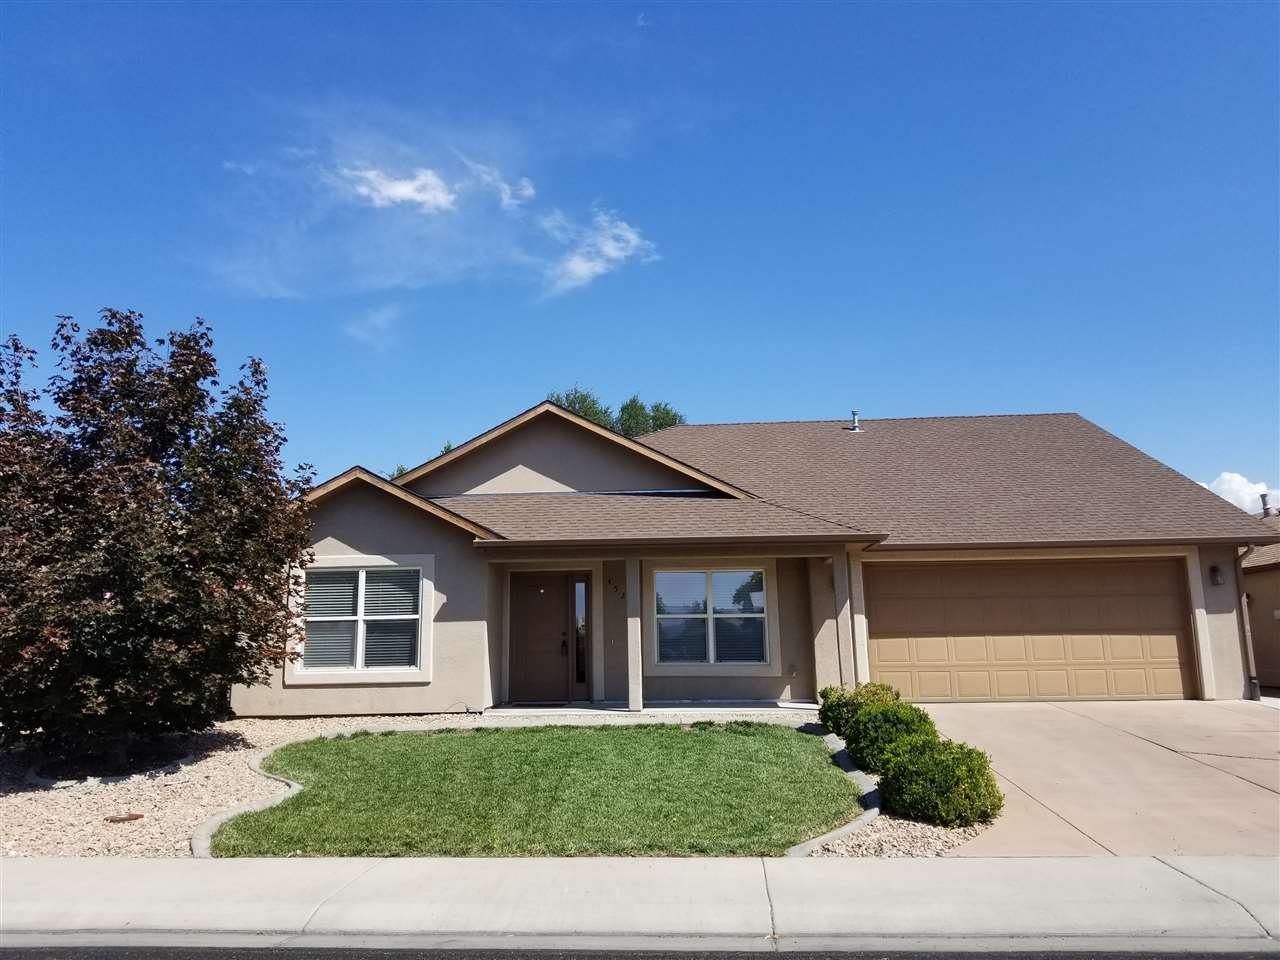 452 1/2 Bismarck Street, Grand Junction, CO 81504